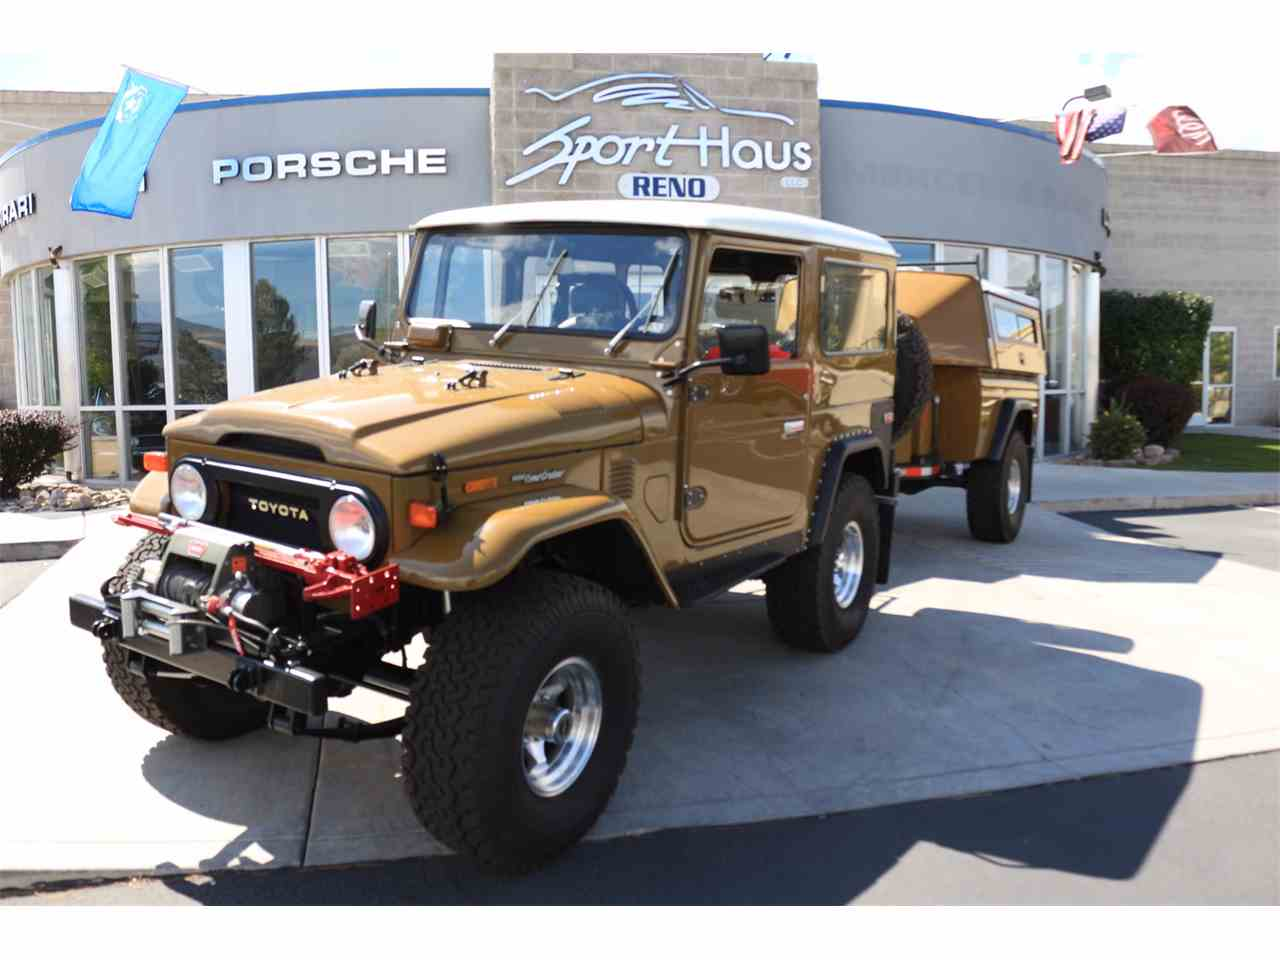 Large Picture of '75 Land Cruiser 4X4 with Trailer located in Reno Nevada - $62,500.00 Offered by Sport Haus Reno - LVUD